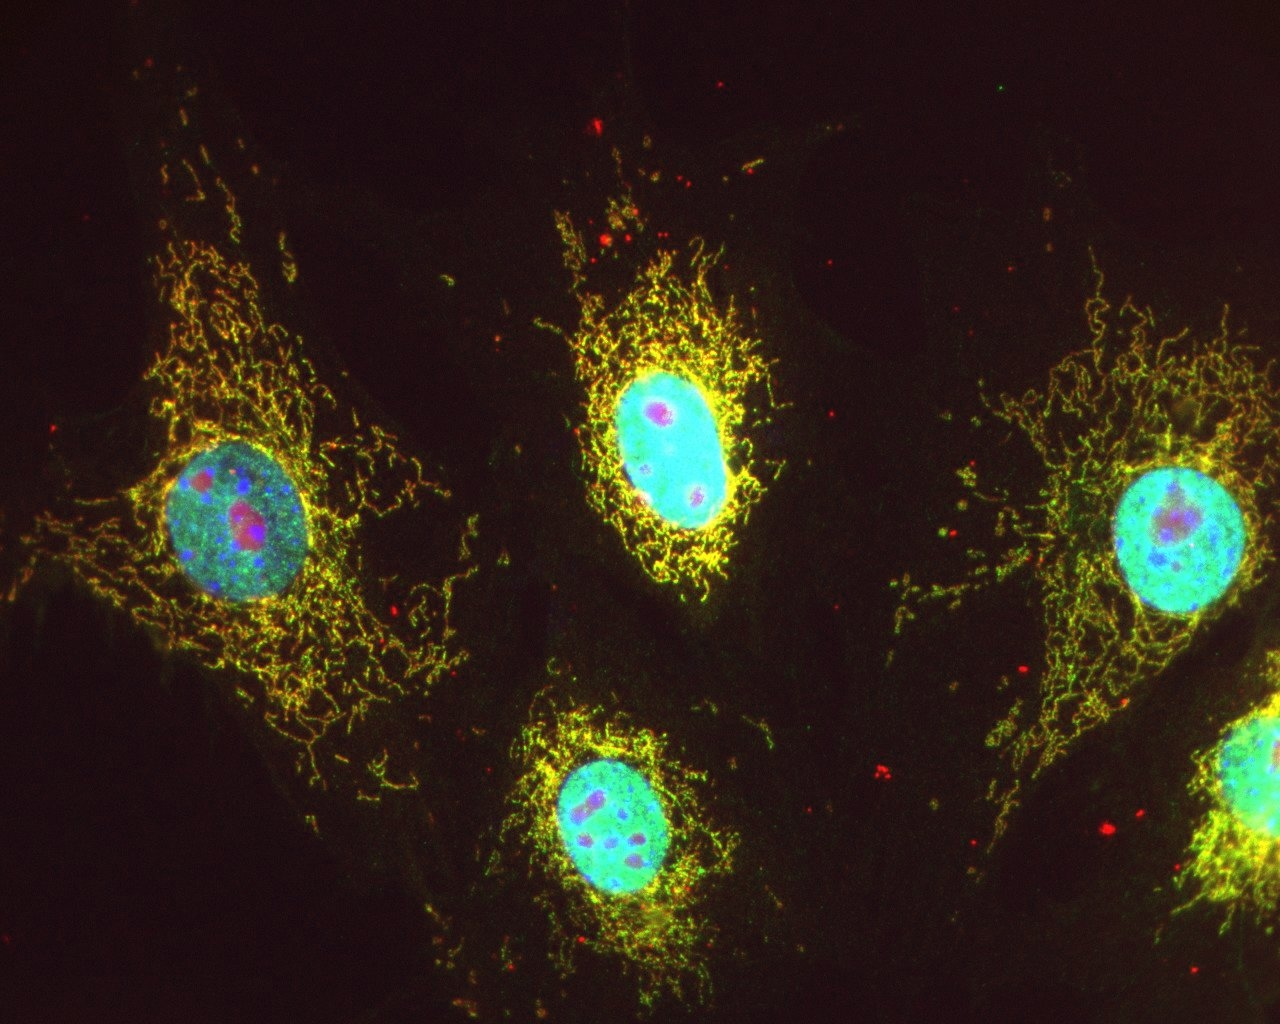 Visualization of acetylated mitochondrial proteins in Swiss 3T3 cells. Acetylated mitochondrial-localized proteins were labeled with acetyl-lysine antibody (Cat. # AAC02) and alexa-488 secondary (green), or a fluorescent mitochondrial marker (mitotracker orange) shown in red.